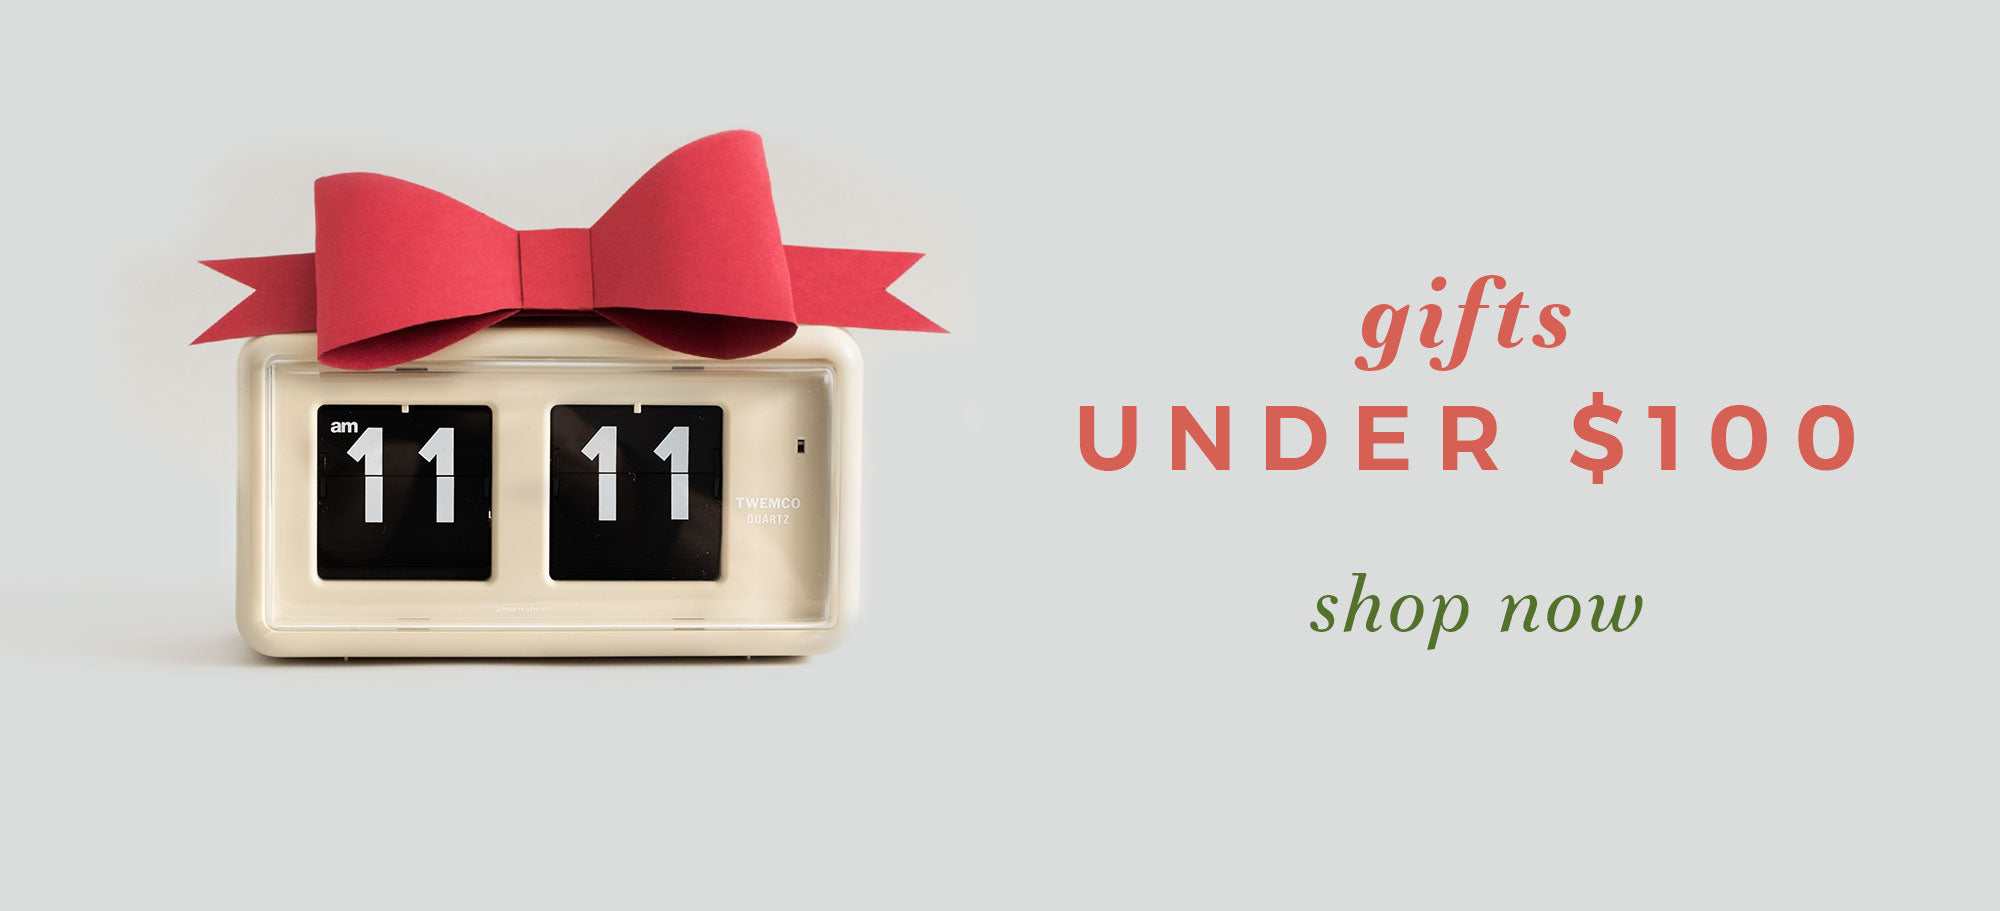 Gift Guide 2019: Under $100